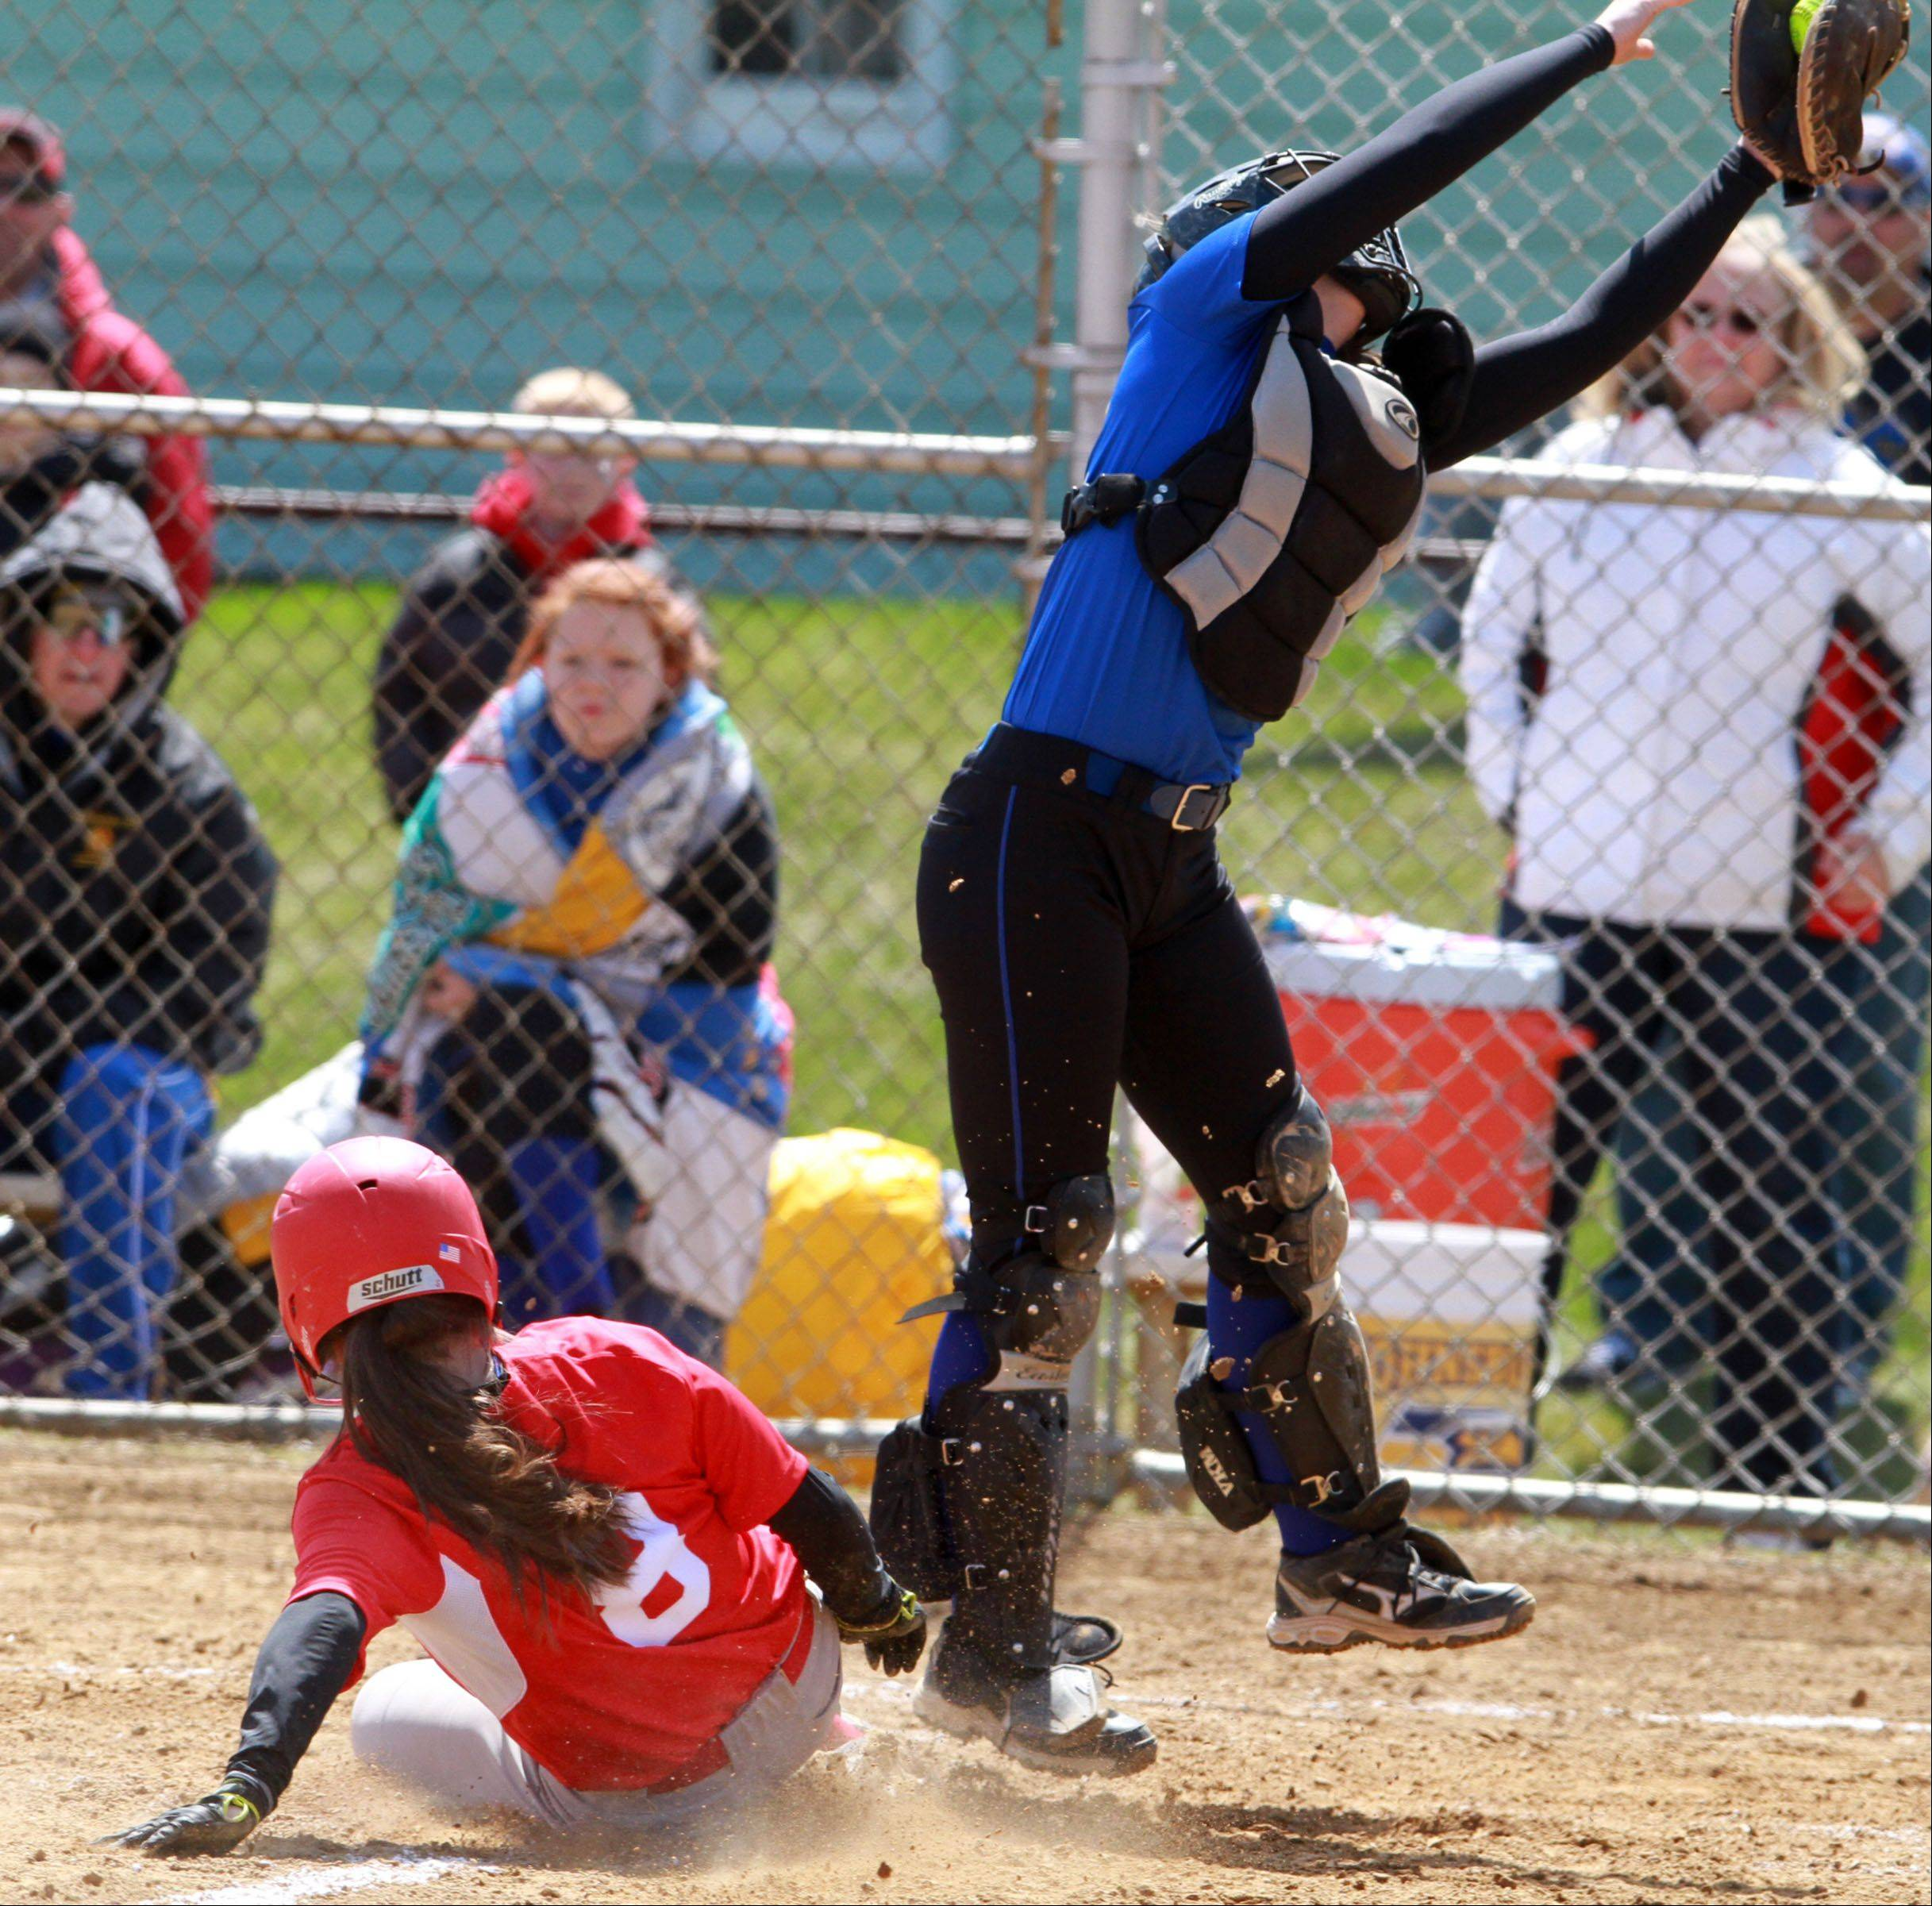 Mundelein's Maddie Zazas slides home safely as Johnsburg's catcher Rachael Barnettez reaches for the throw at Mundelein on Saturday.